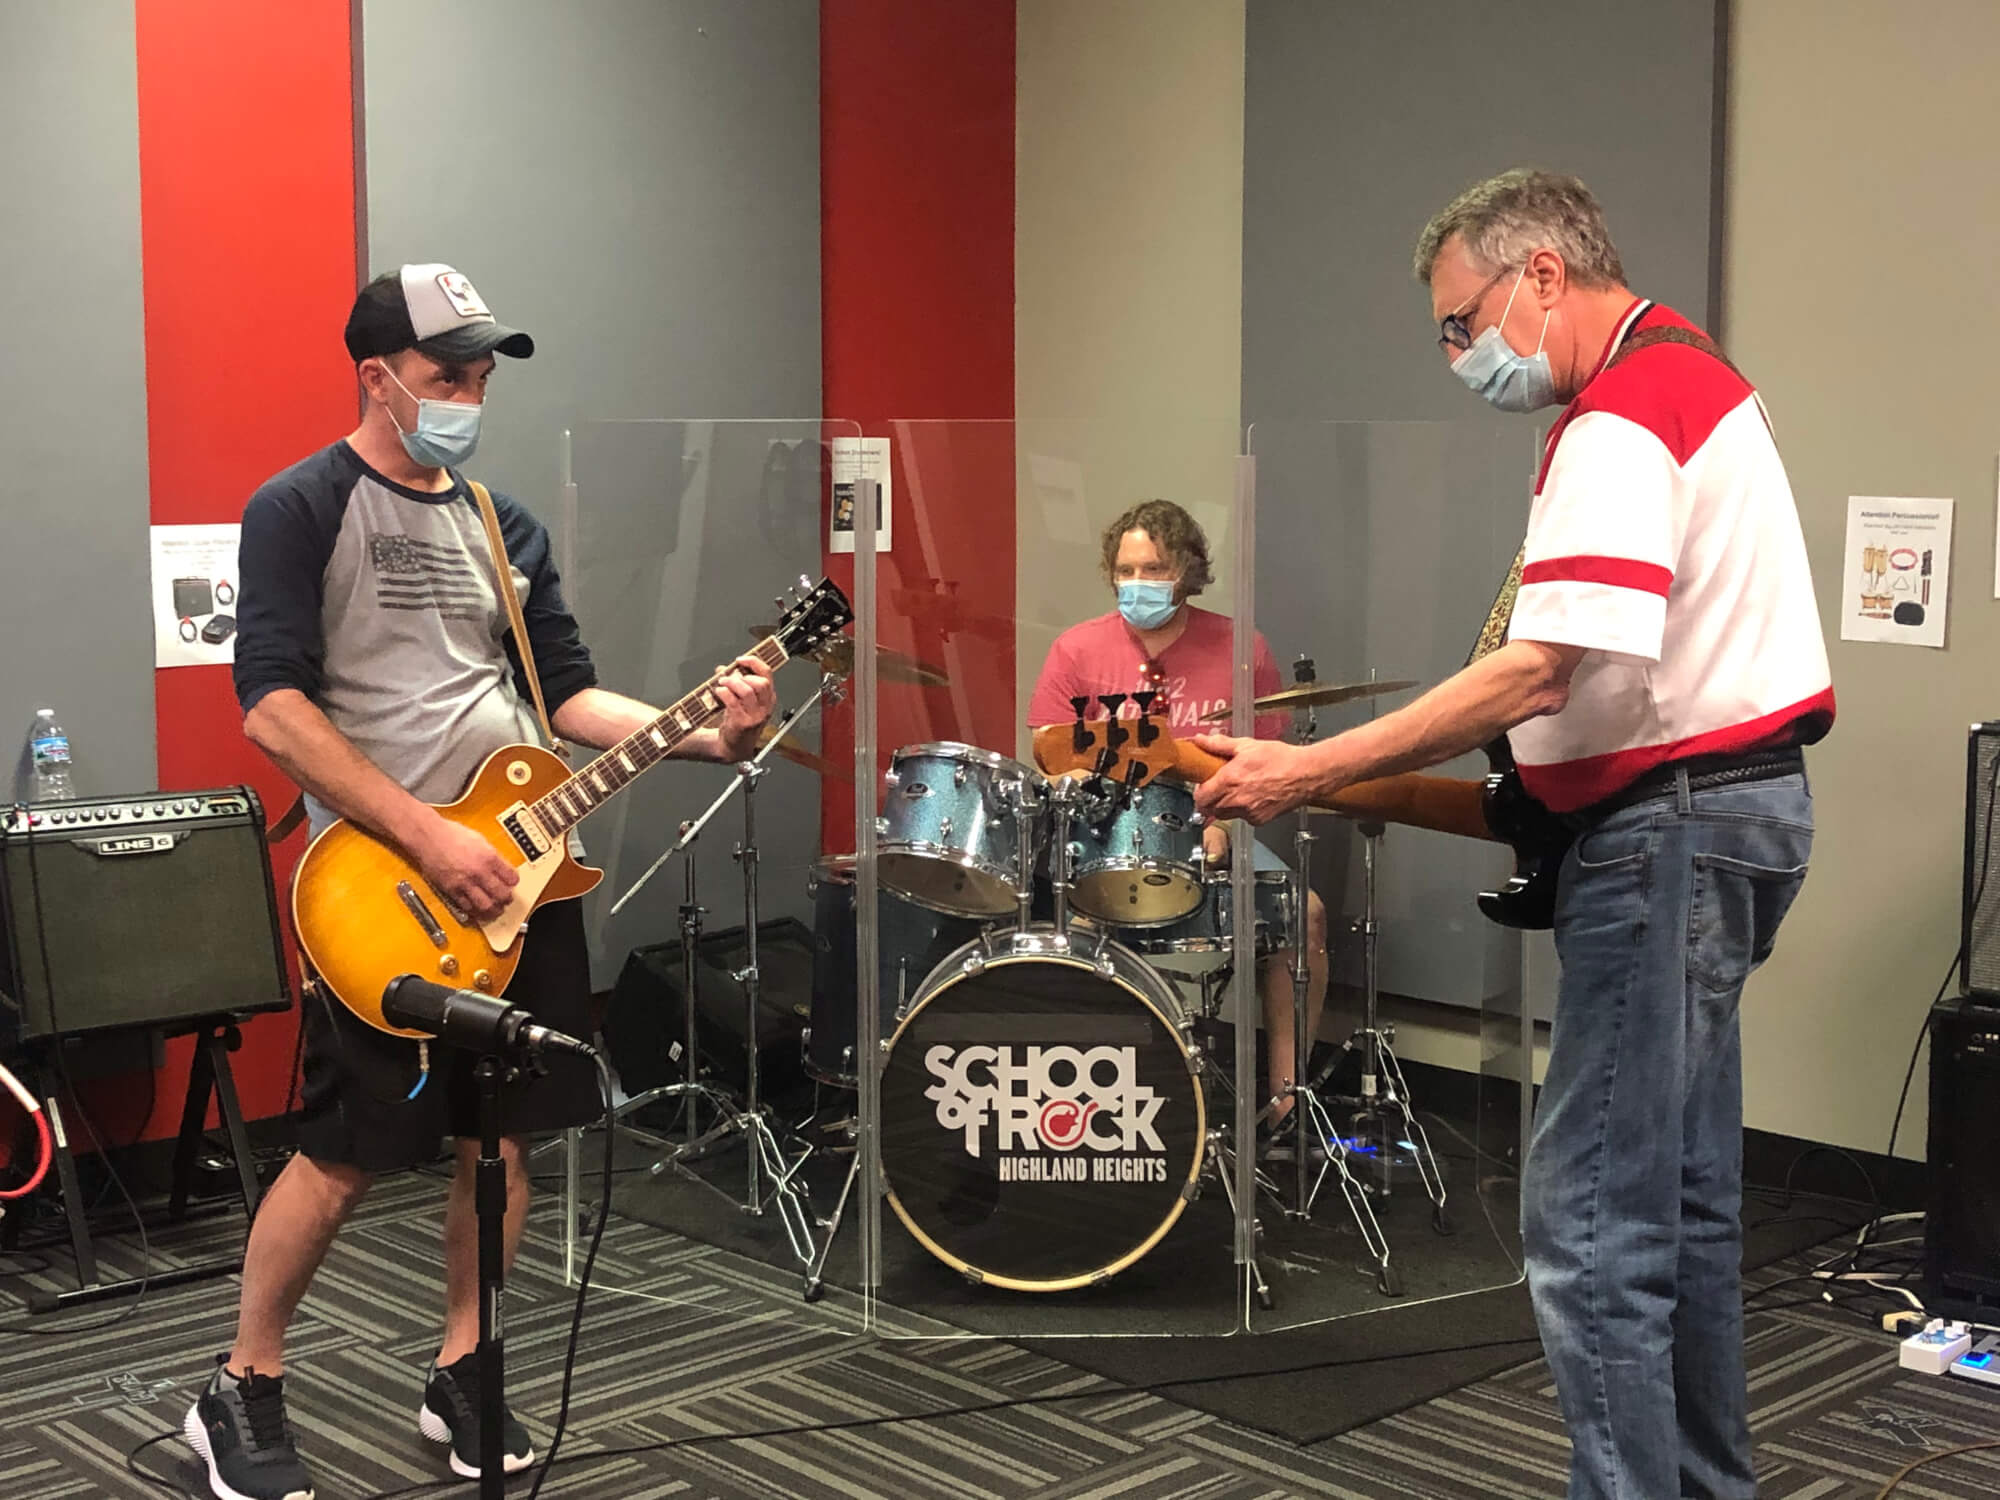 Students jamming at School of Rock Highland Heights.